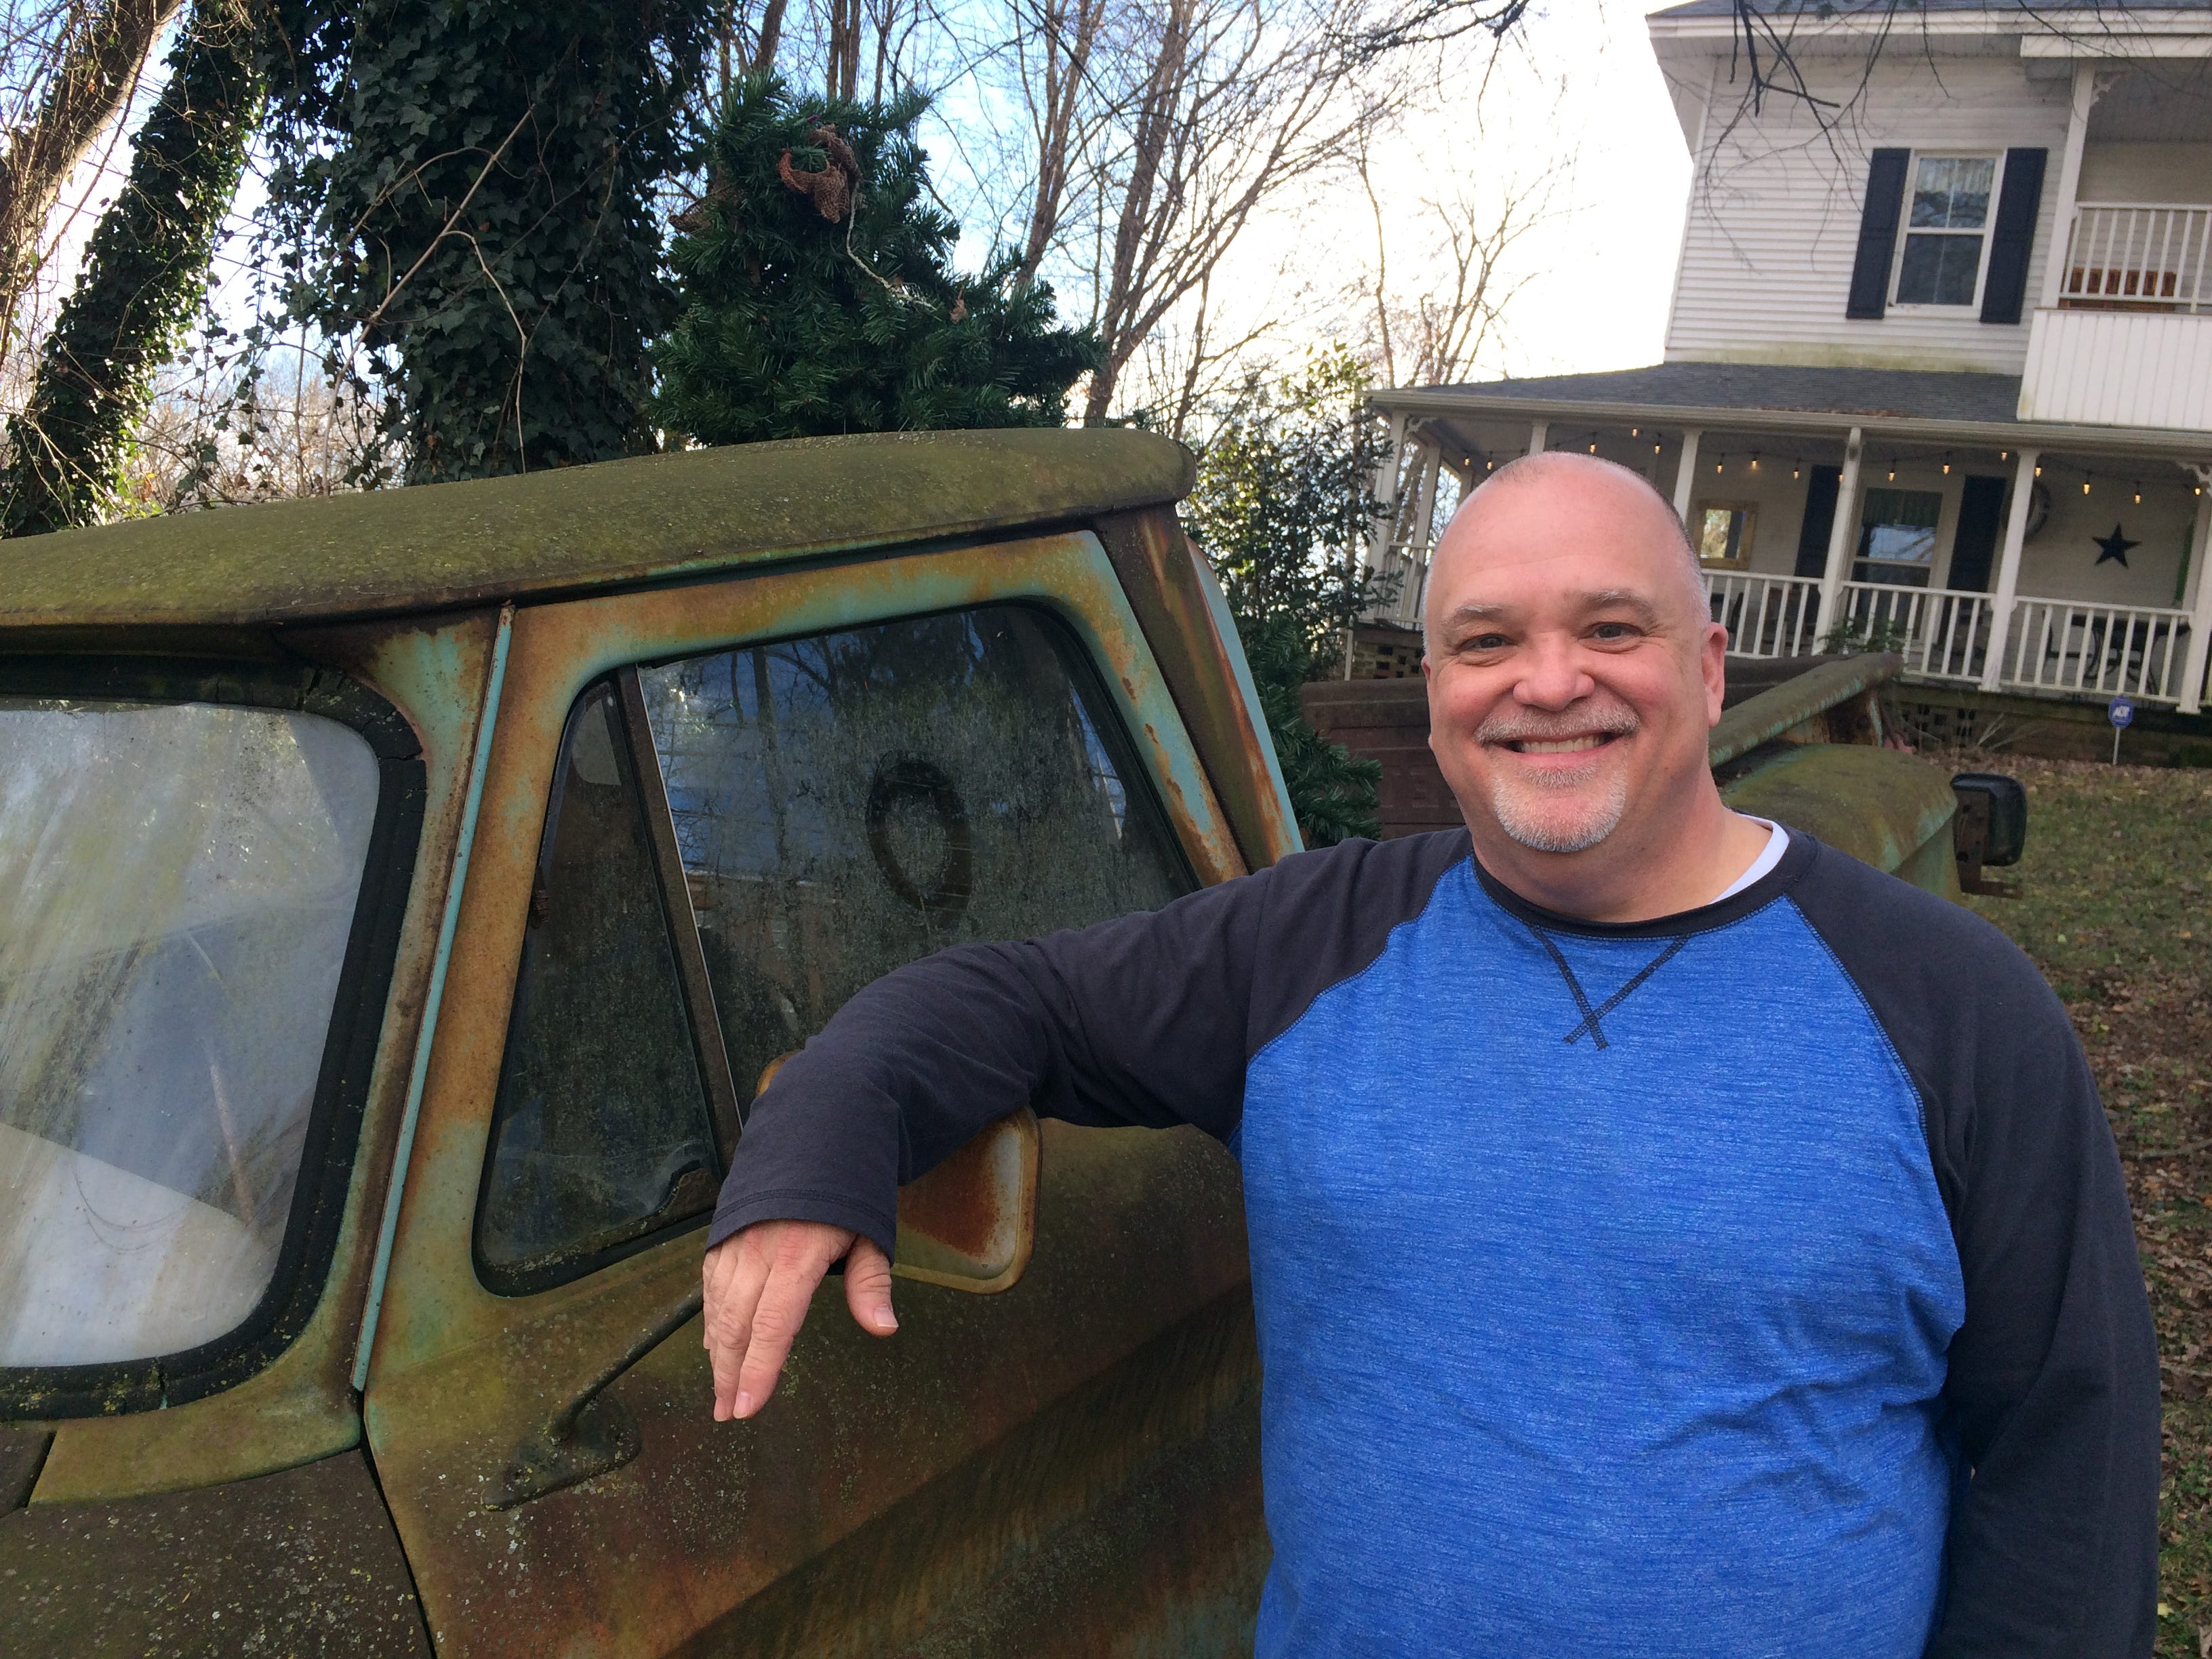 Bart Elkins, owner of The Front Porch, has a rusted ol' pickup truck in front of the restaurant that is part of the ambiance and his pride and joy.